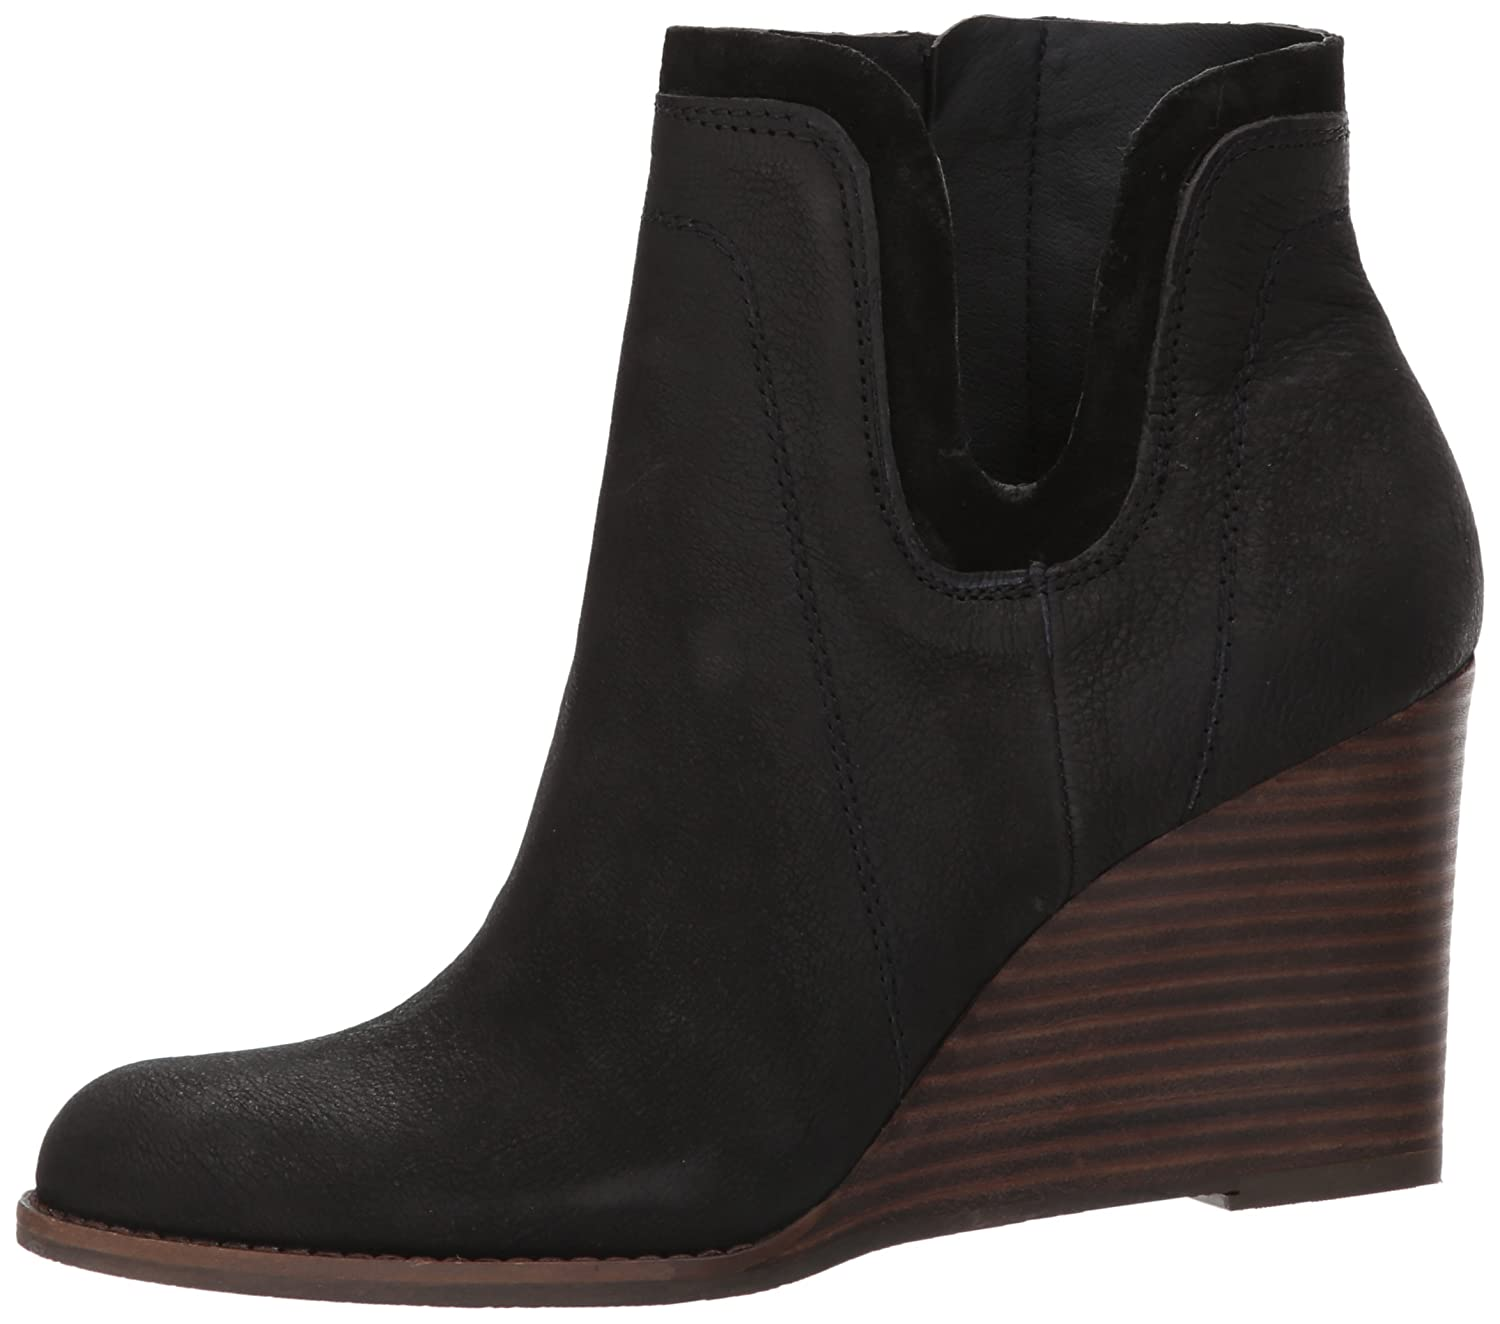 Lucky Boot Brand Women's Yenata Fashion Boot Lucky B06XD4YMRJ 6.5 M US|Black 2a17d3